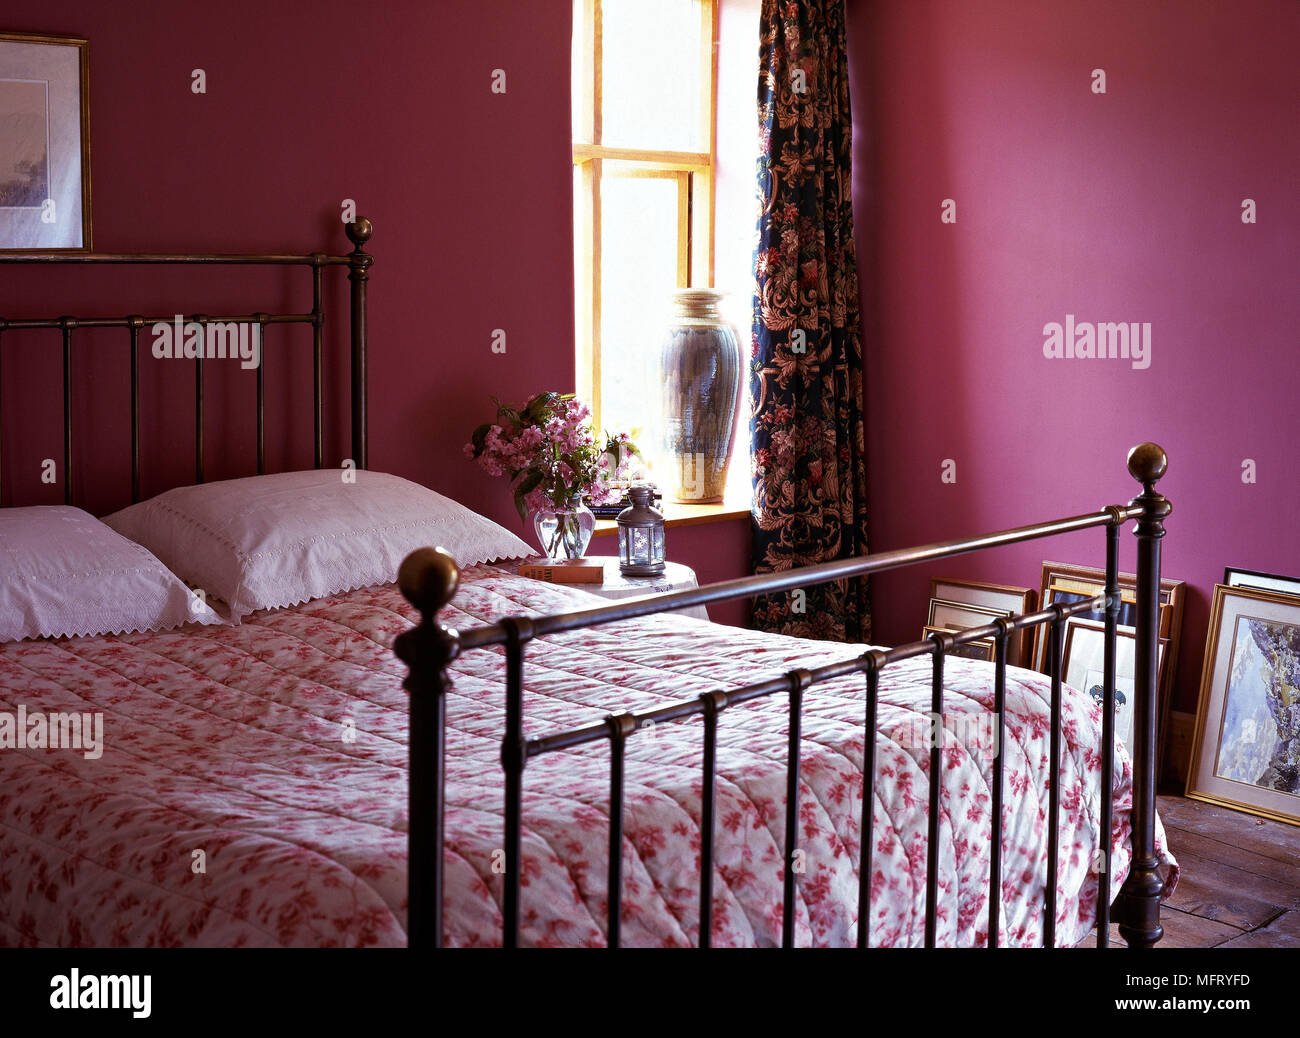 Bright purple painted bedroom iron bed frames pink and floral ...